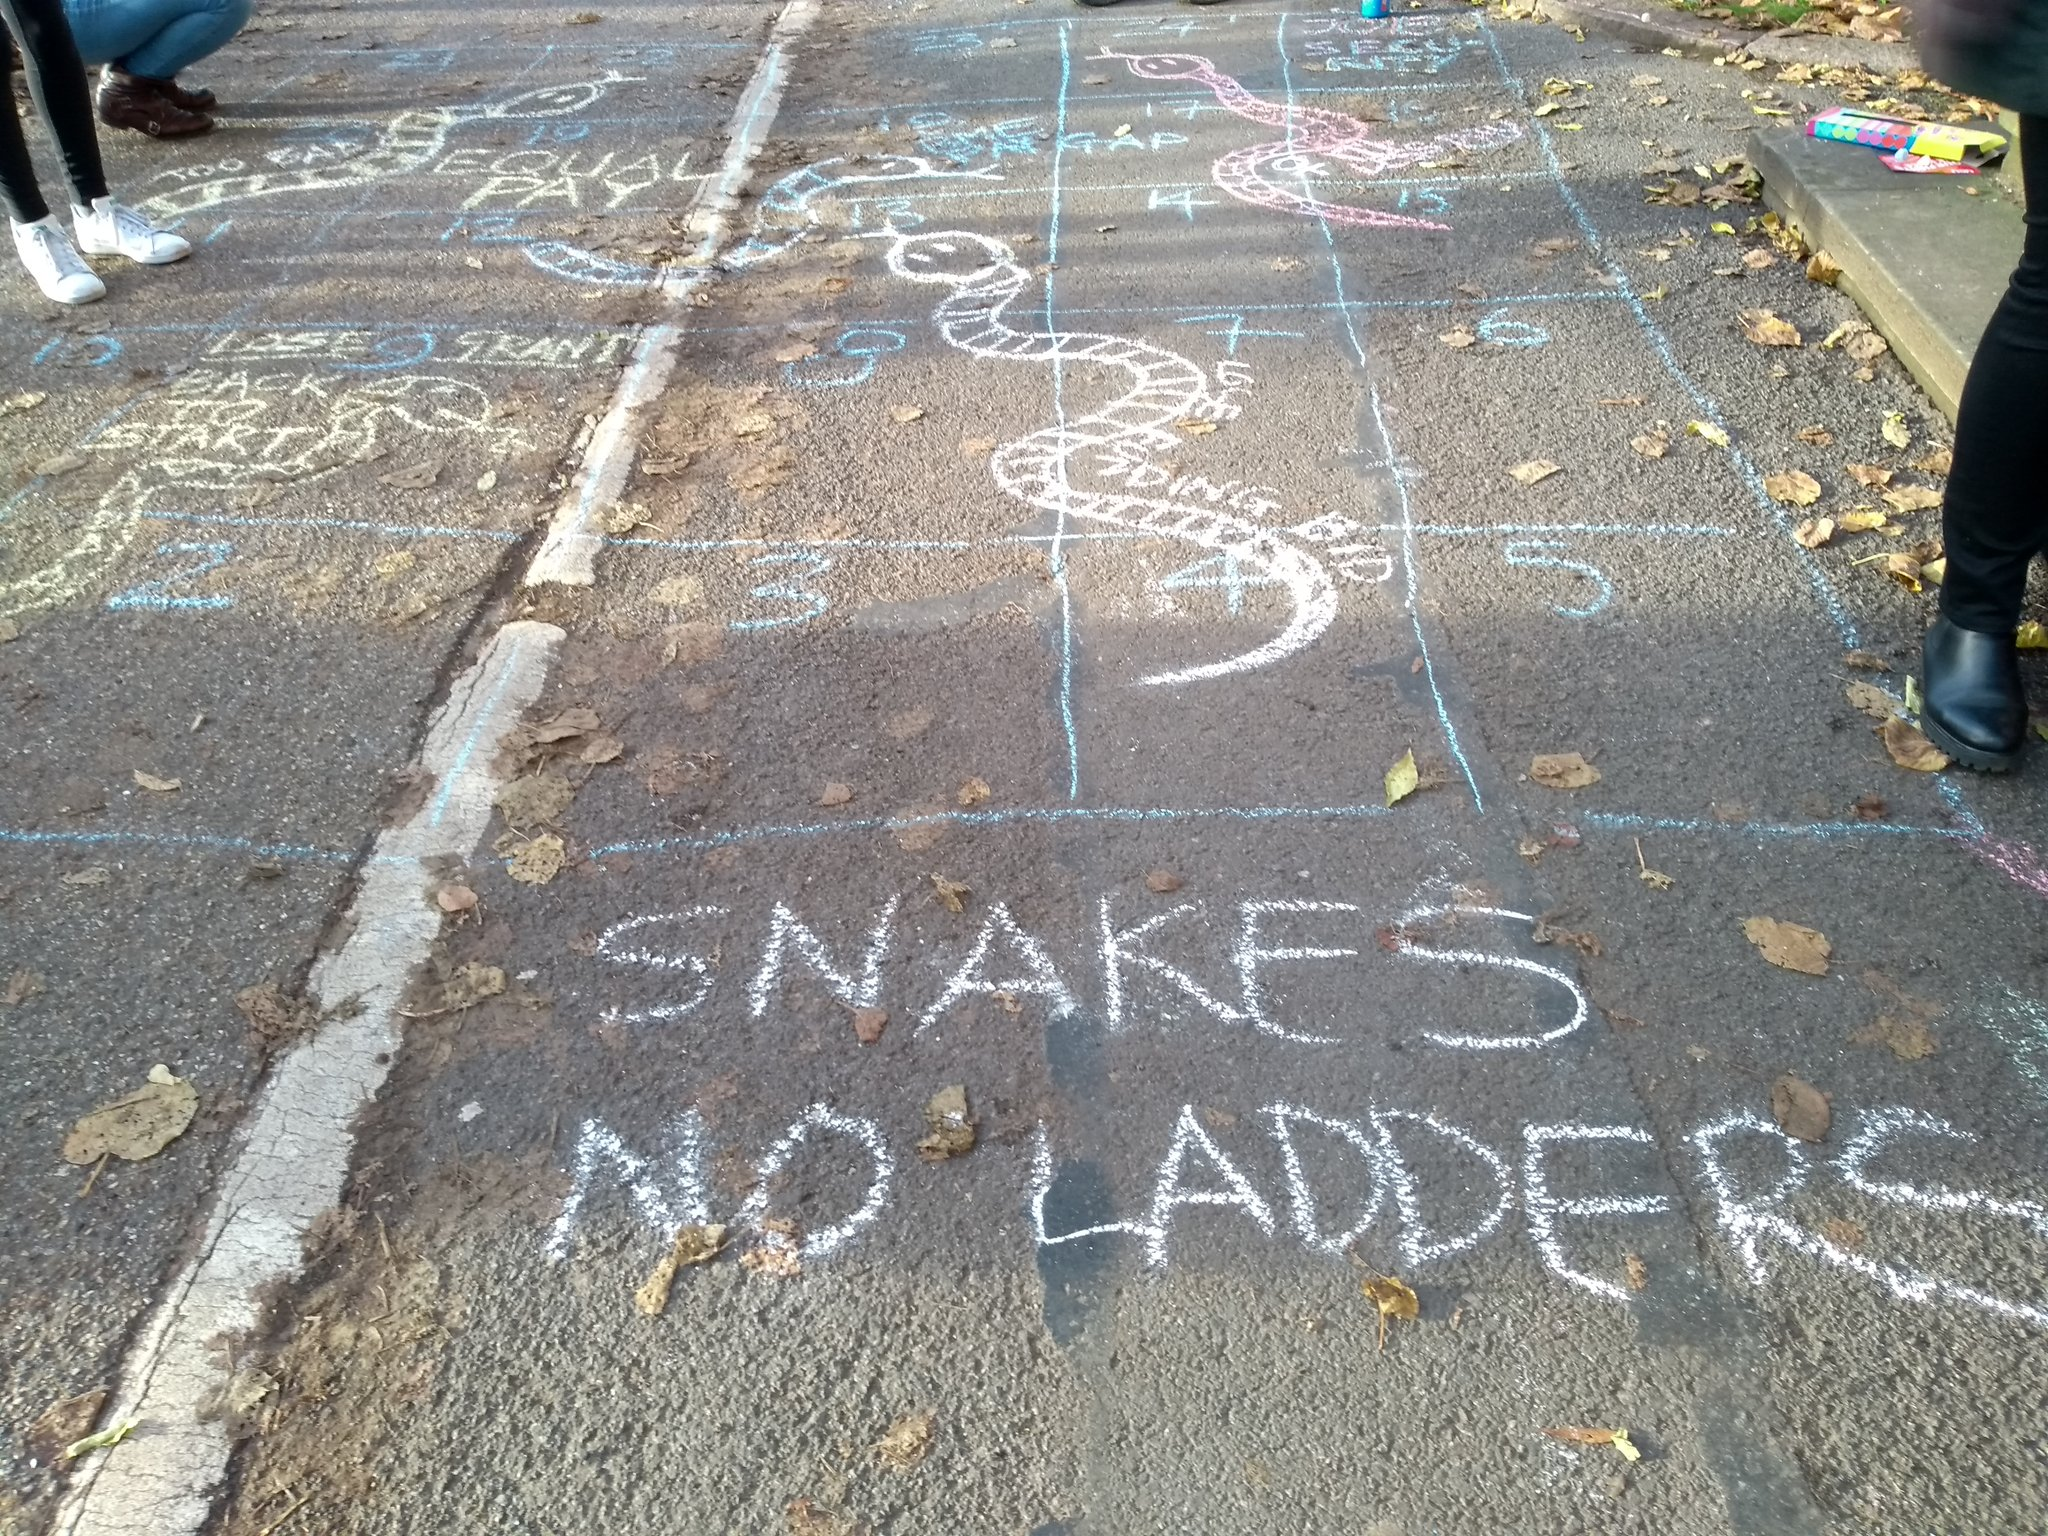 Tina Fawcett On Twitter We Are Playing Snakes No Ladders The Academic Job Security Variant Oxforducu Ucustrikesback Ucustrike